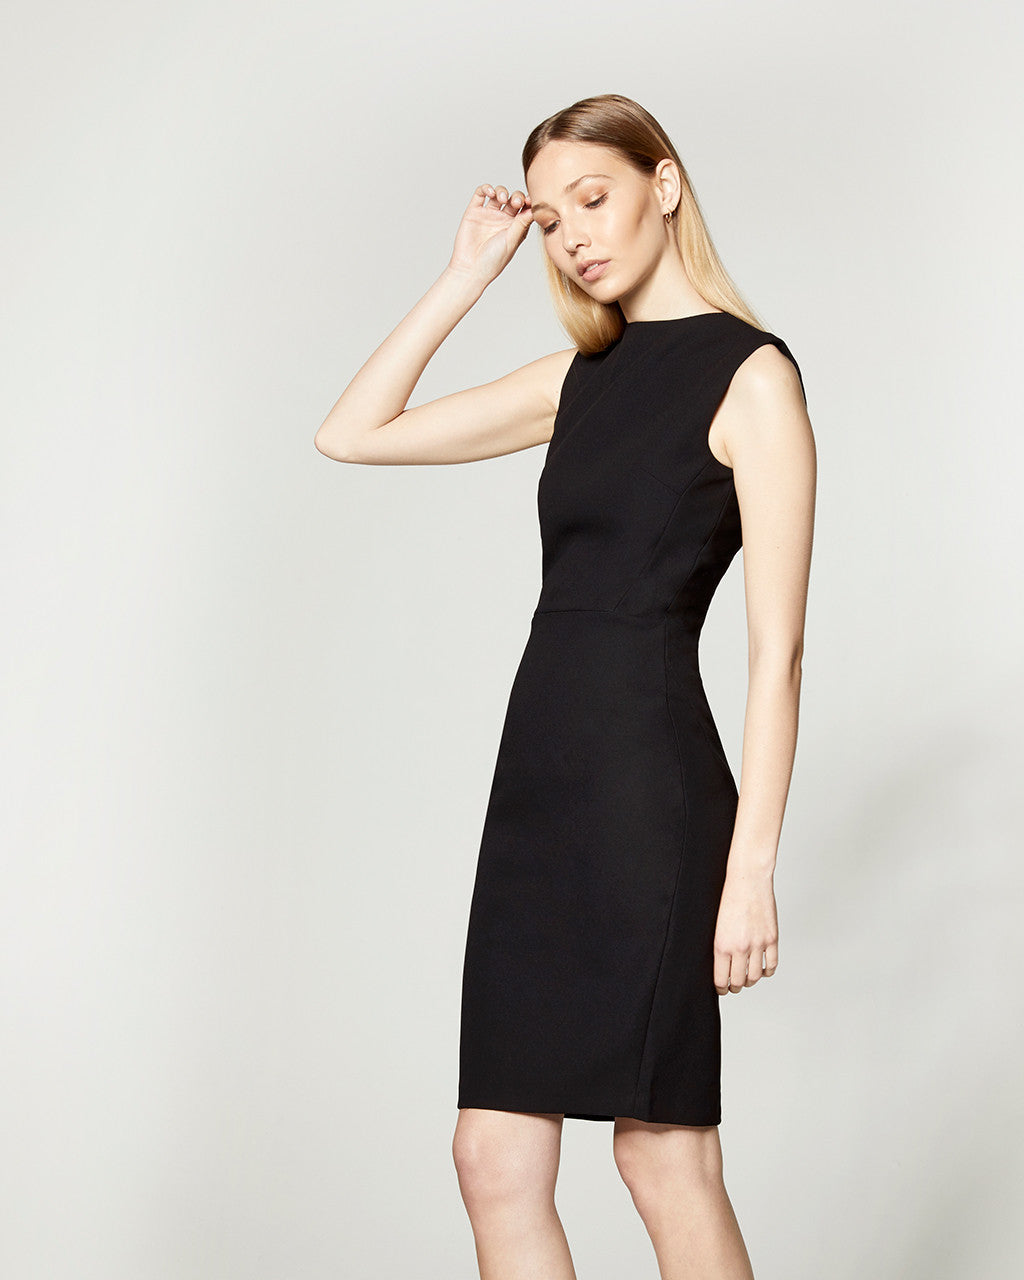 Fitted Long Zip Dress - Black - V. 2.0